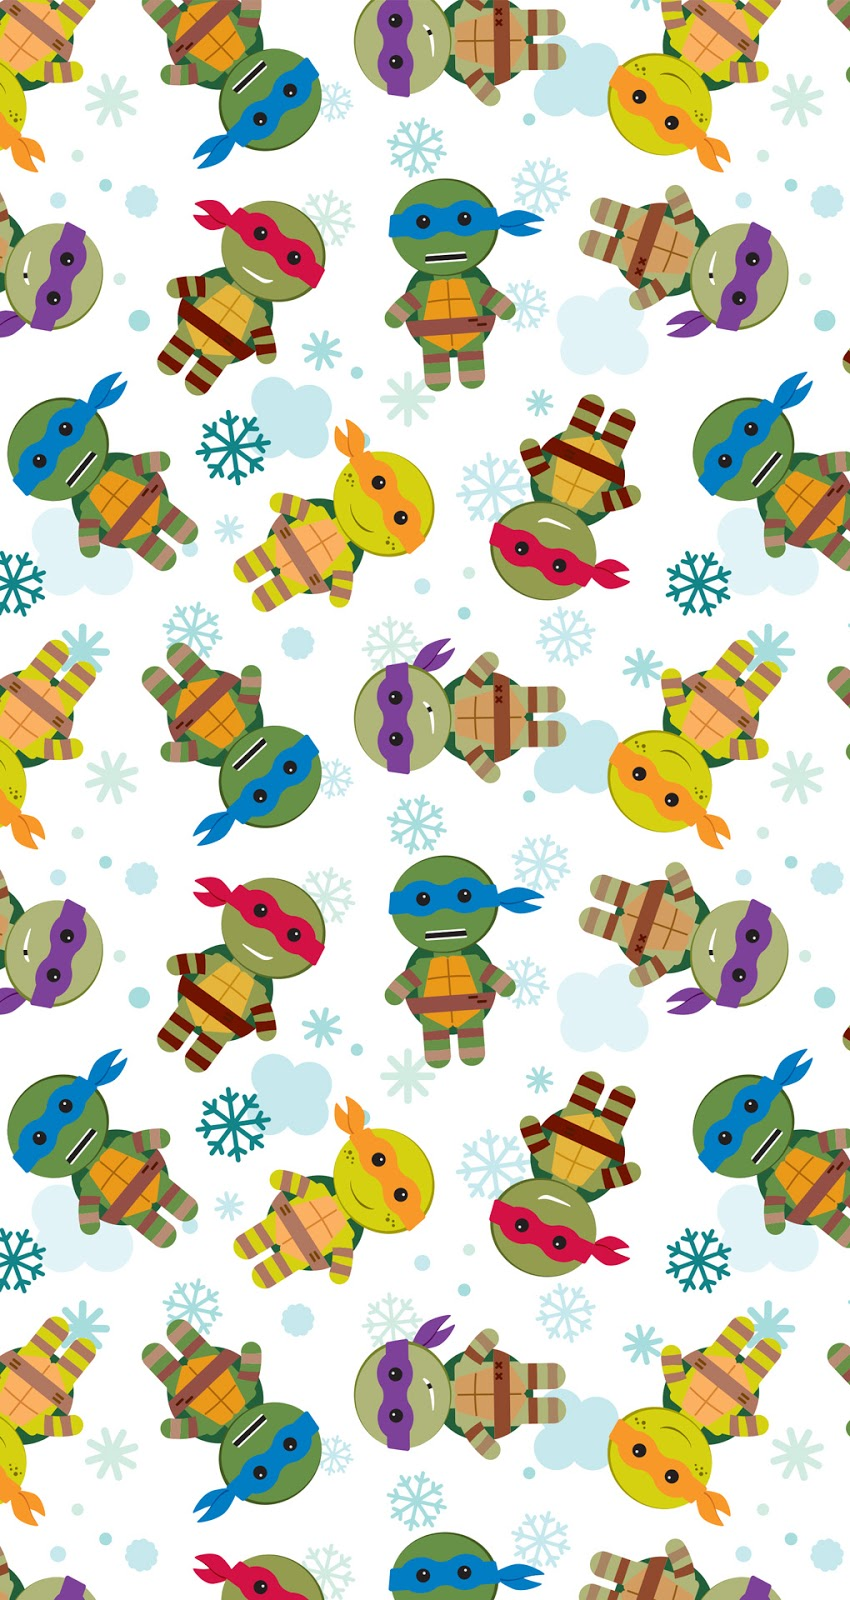 NickALive Festive Nickelodeon Mobile Backgrounds By 850x1600